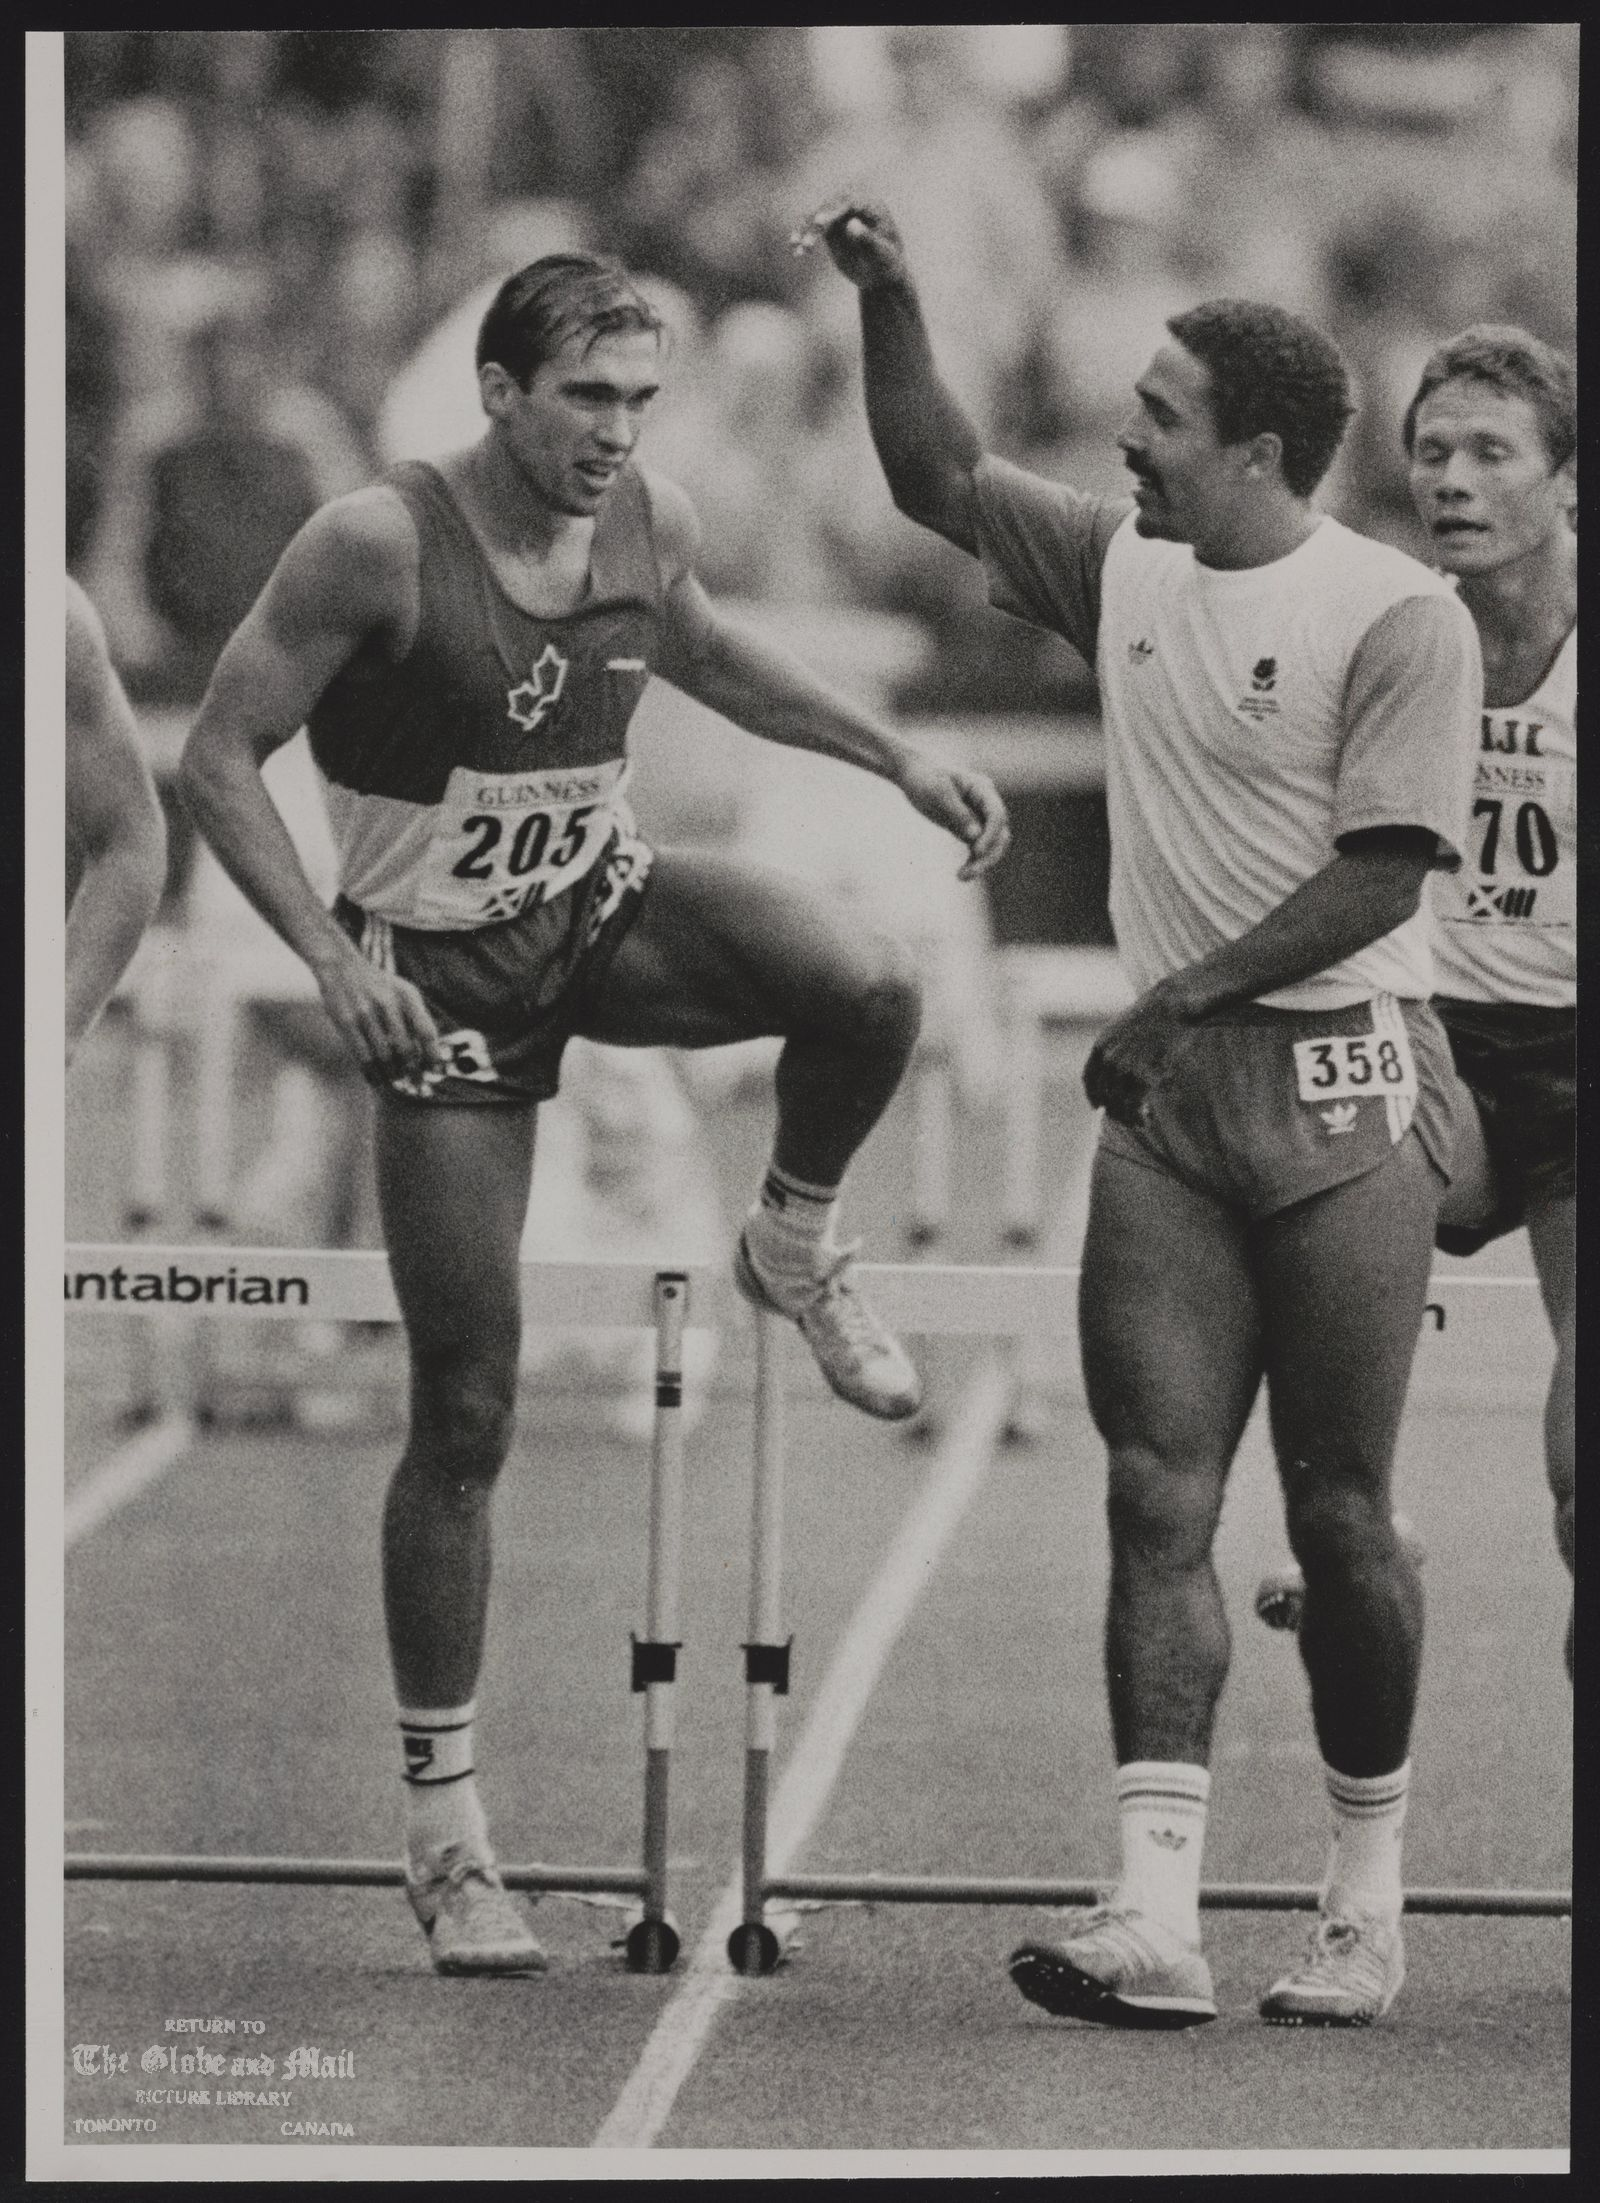 COMMONWEALTH GAMES EDINBURGH 1986 EDI21:SPECIAL FOR TORONTO GLOBE AND MAIL, CANADA EDINBURG, SCOTLAND, JULY 28,- Commonwealth Games decathlon Gold medallist Daley Thompson is watched by silver medallist Dave Steen of Canada during the victory lap of honour at Meadowbank Stadium